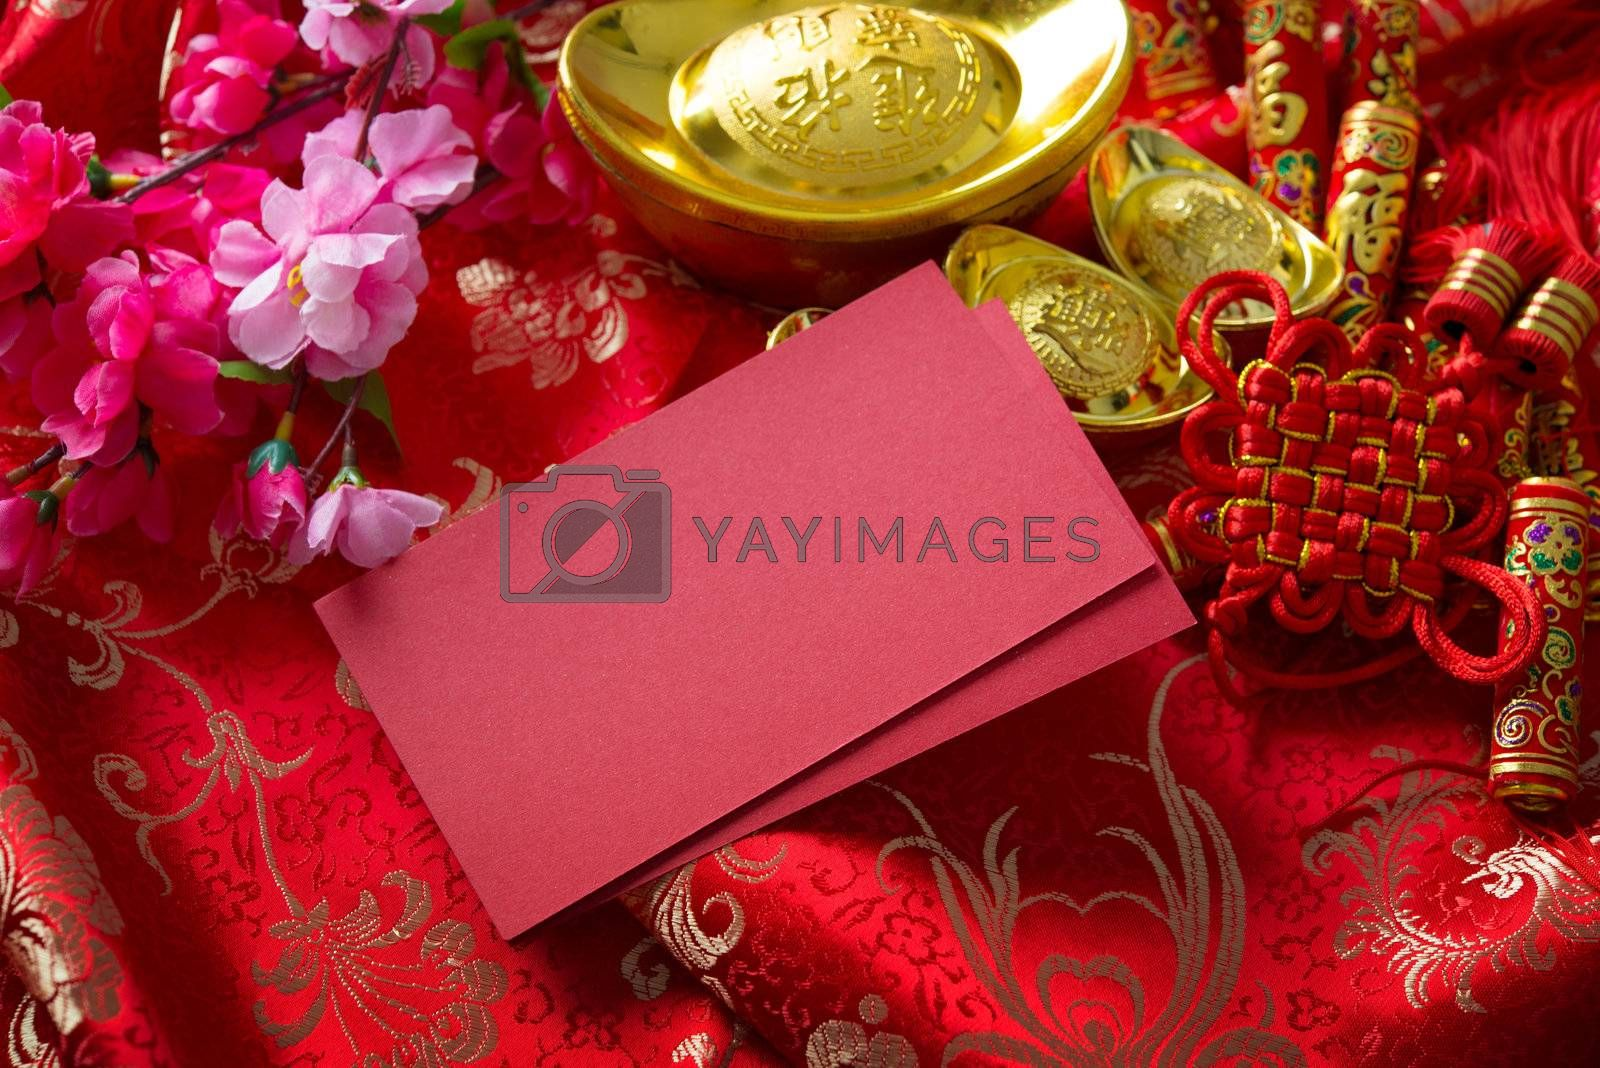 Chinese new year festival decorations , the chinese character on the gold ingots means fortune and luck